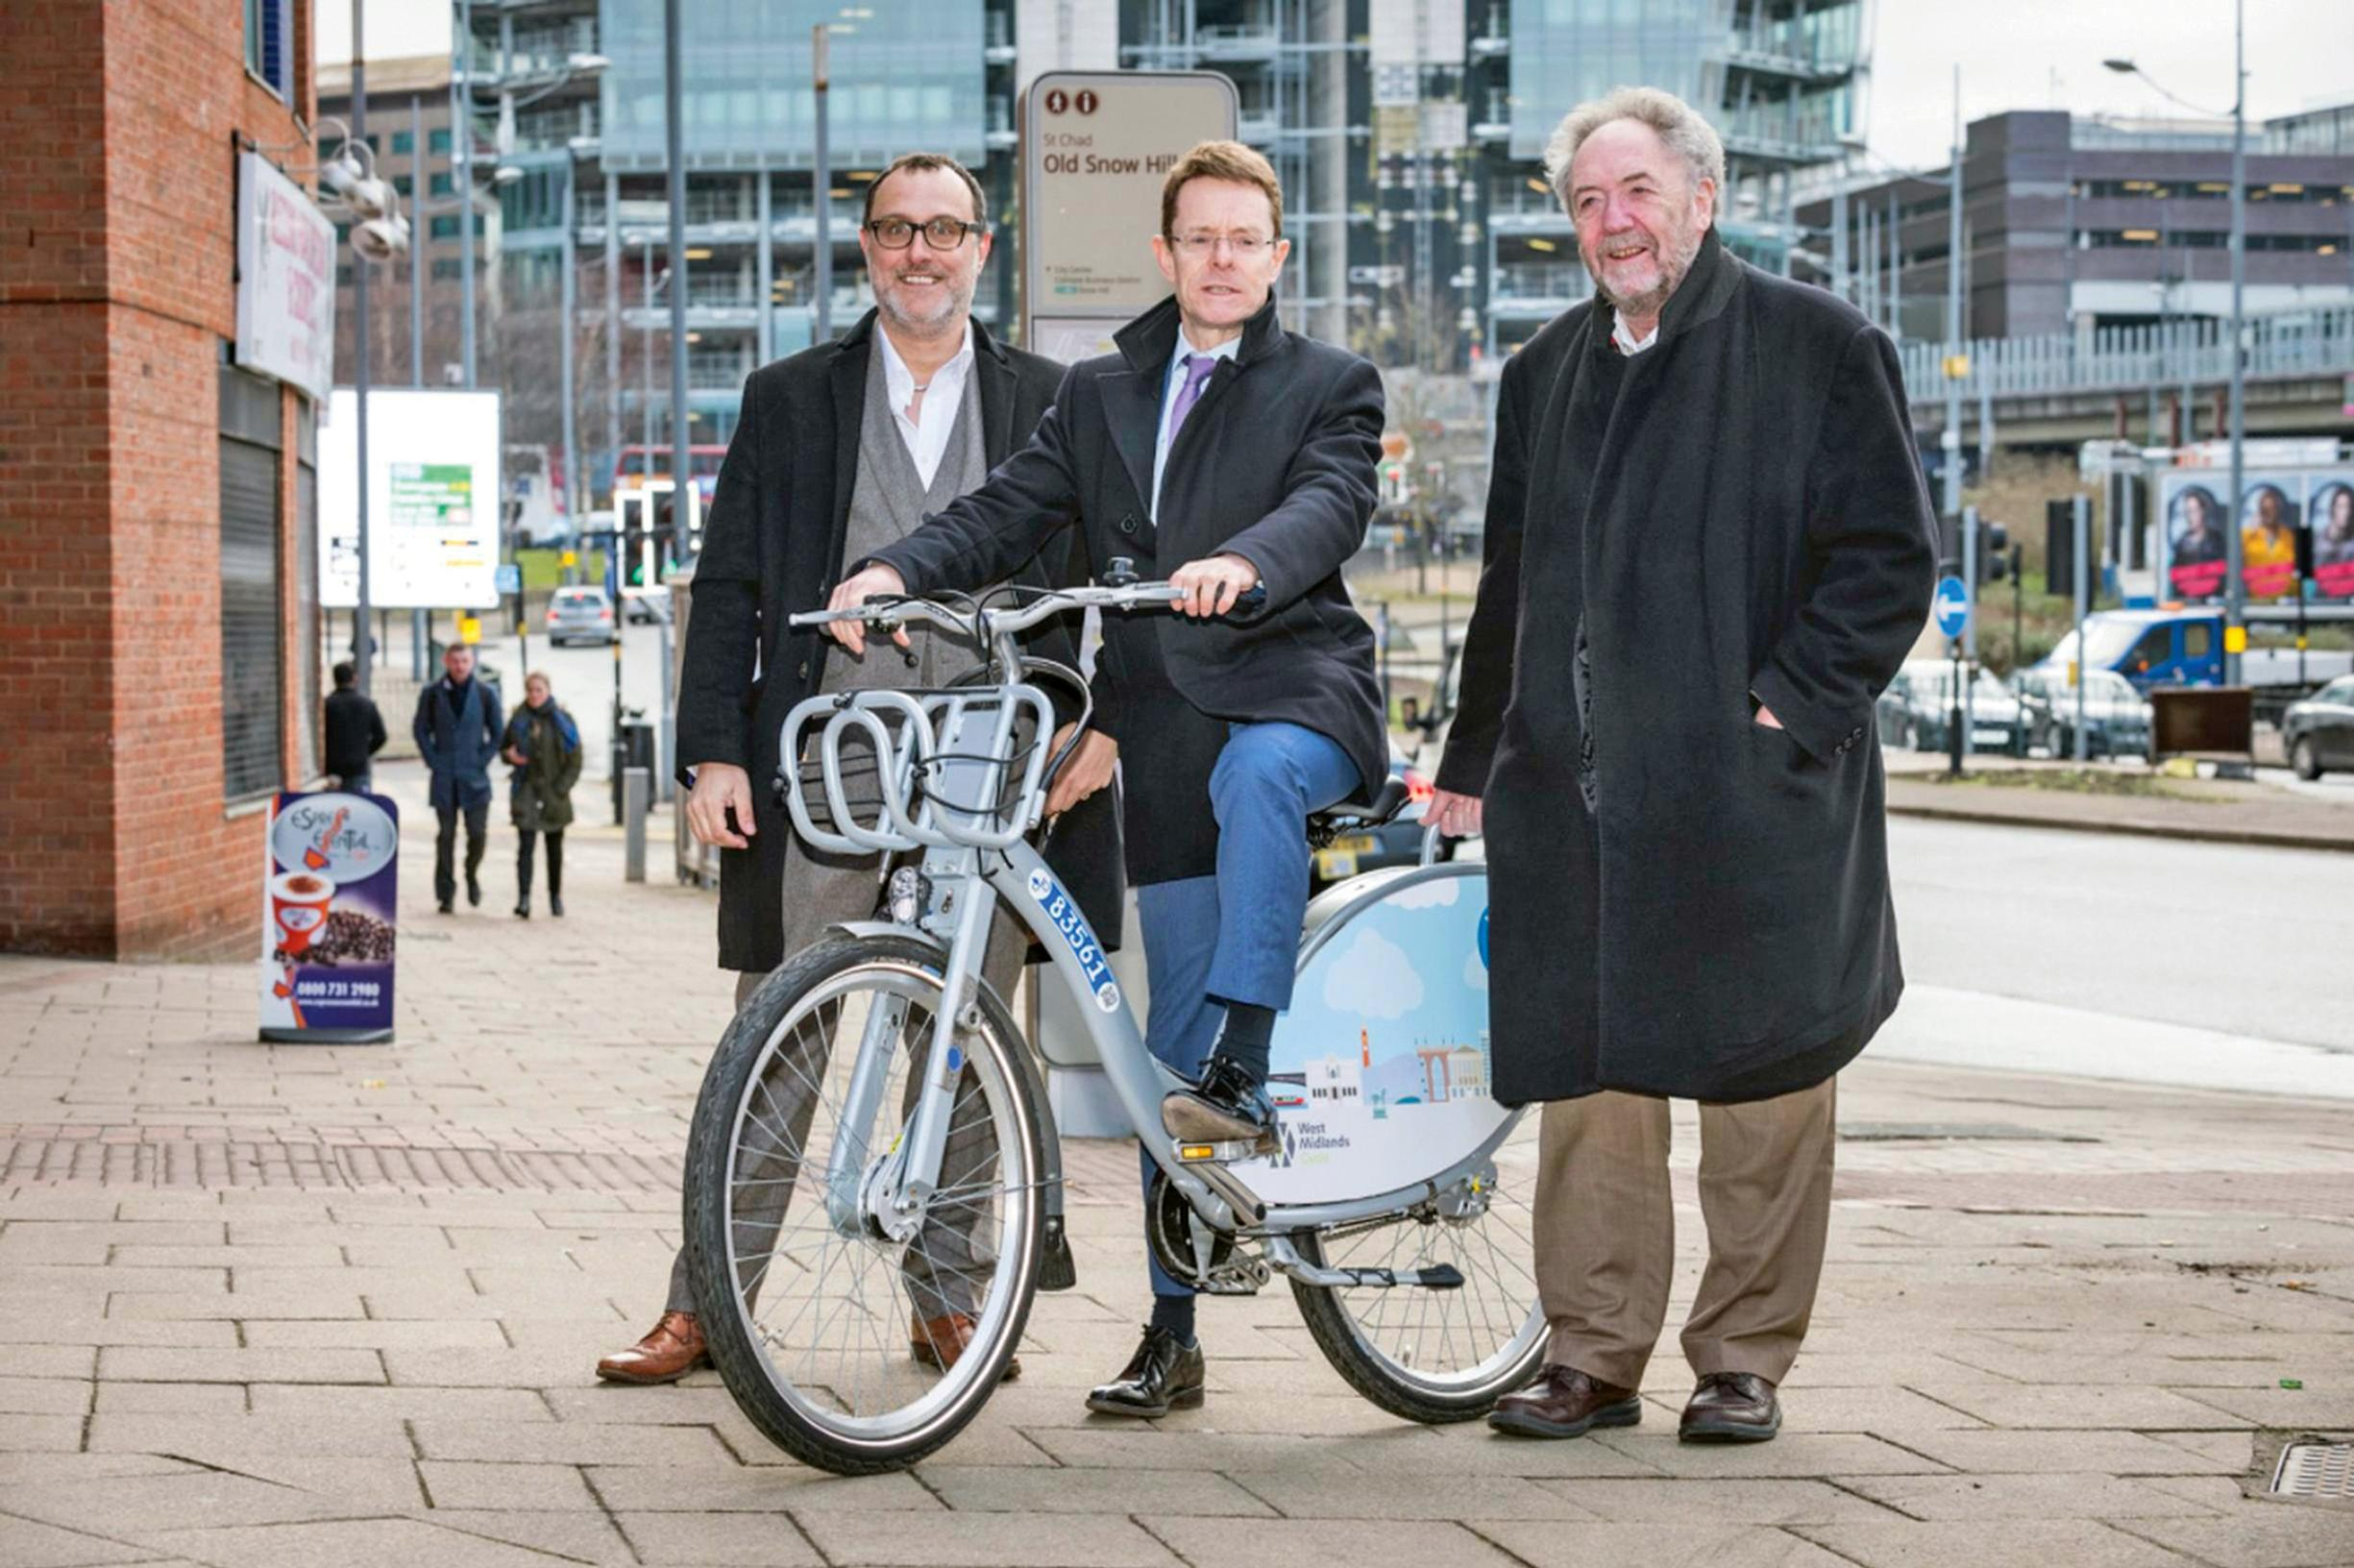 Happier days: West Midlands mayor Andy Street (centre) marking the award of the Nextbike contract